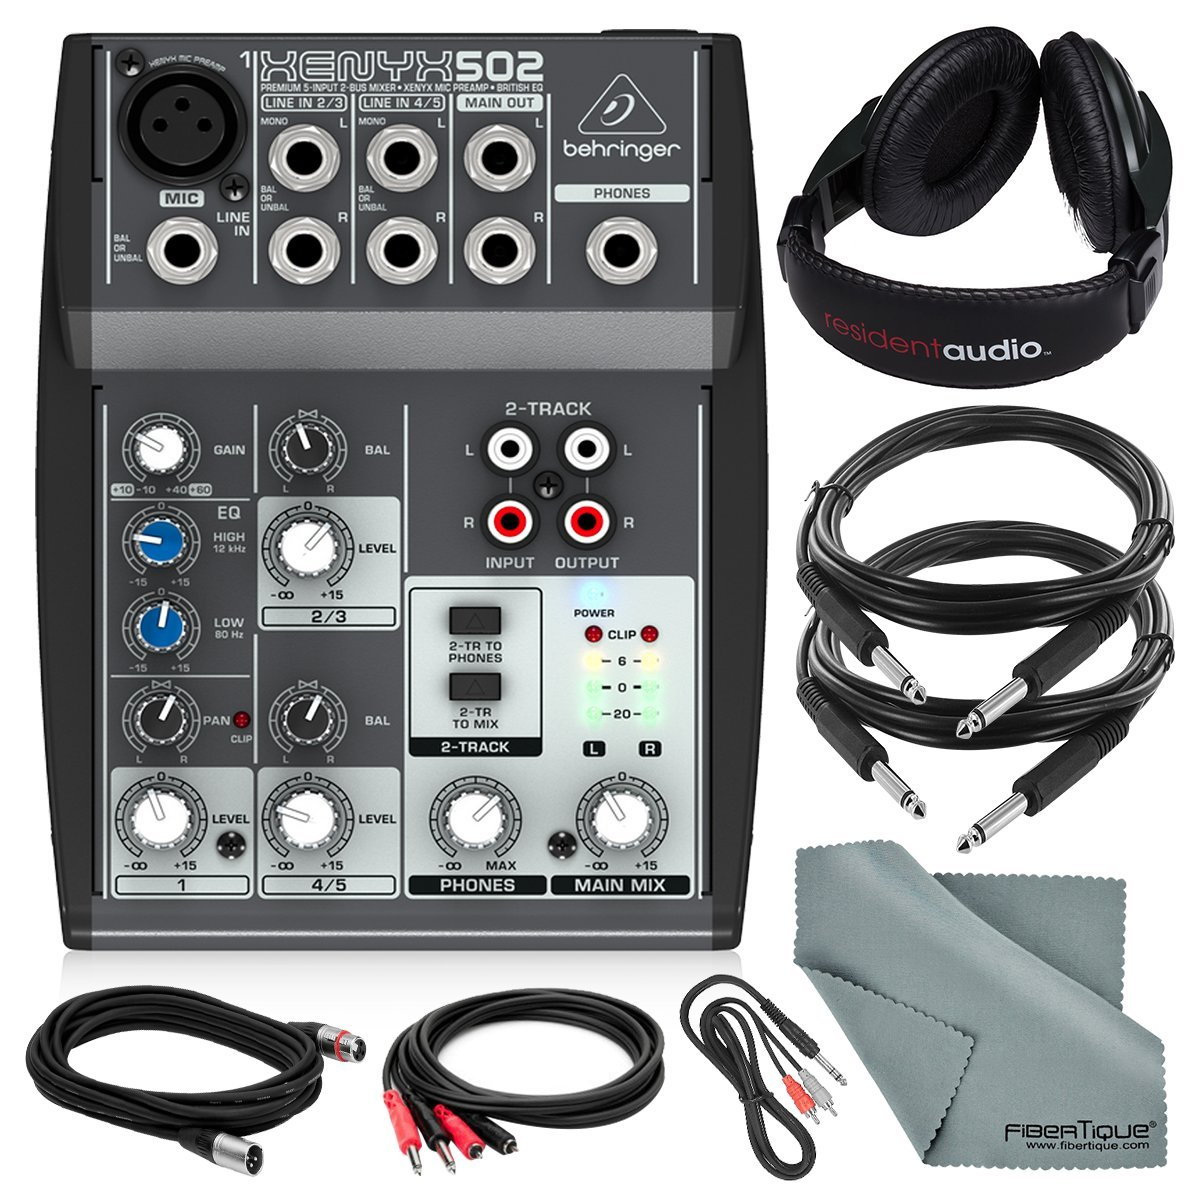 Behringer XENYX 502 5-Channel Audio Mixer and Deluxe Bundle w/ Stereo Headphones, 5X Cables, and Fibertique Cloth by Photo Savings